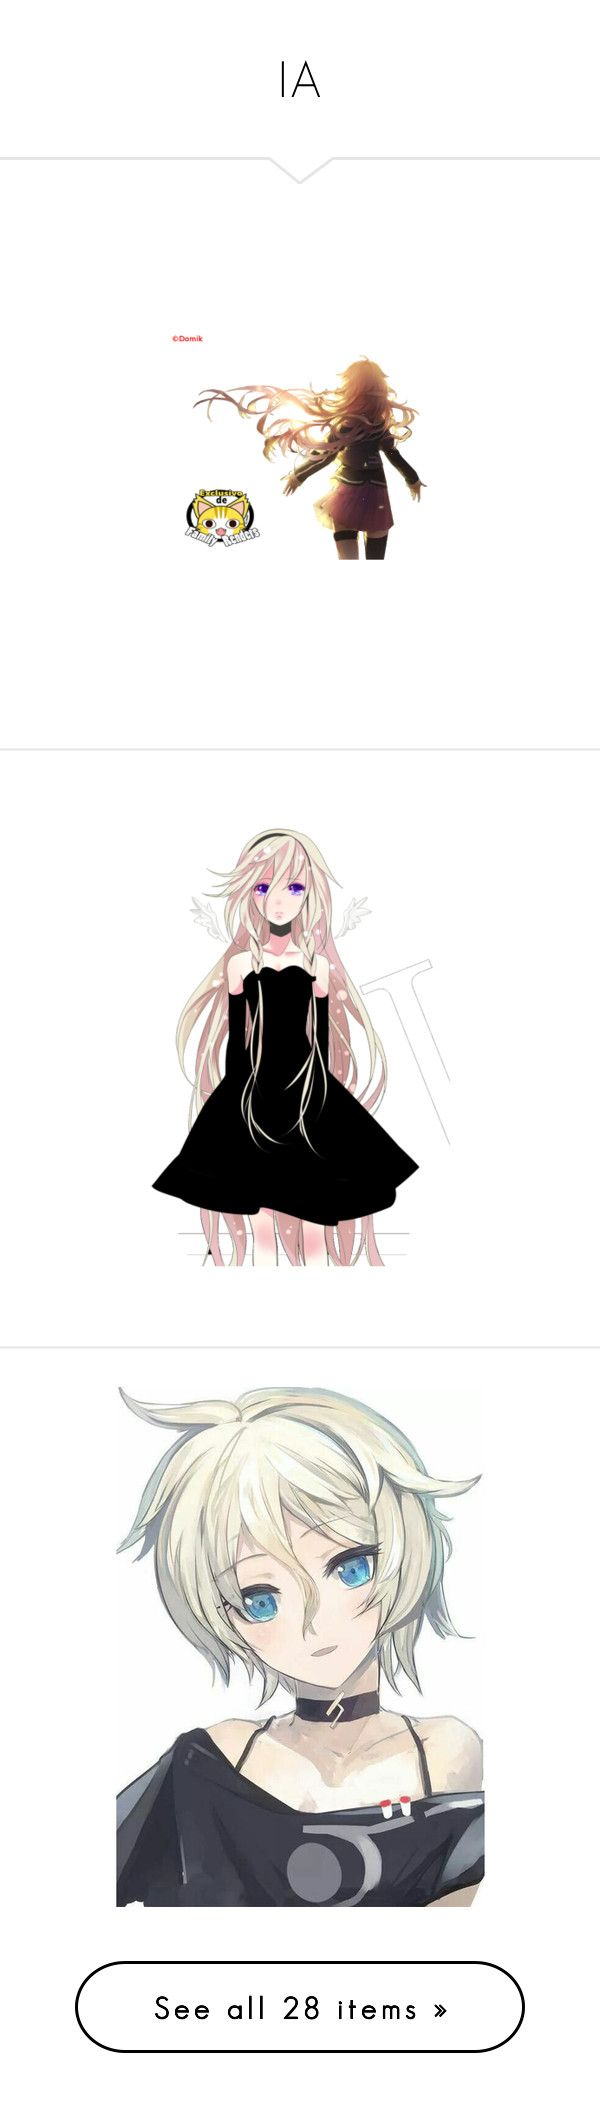 """""""IA"""" by yumecchi ❤ liked on Polyvore featuring anime, vocaloid, filler, drawings, people, art, figures, ia, anime girl and effect"""